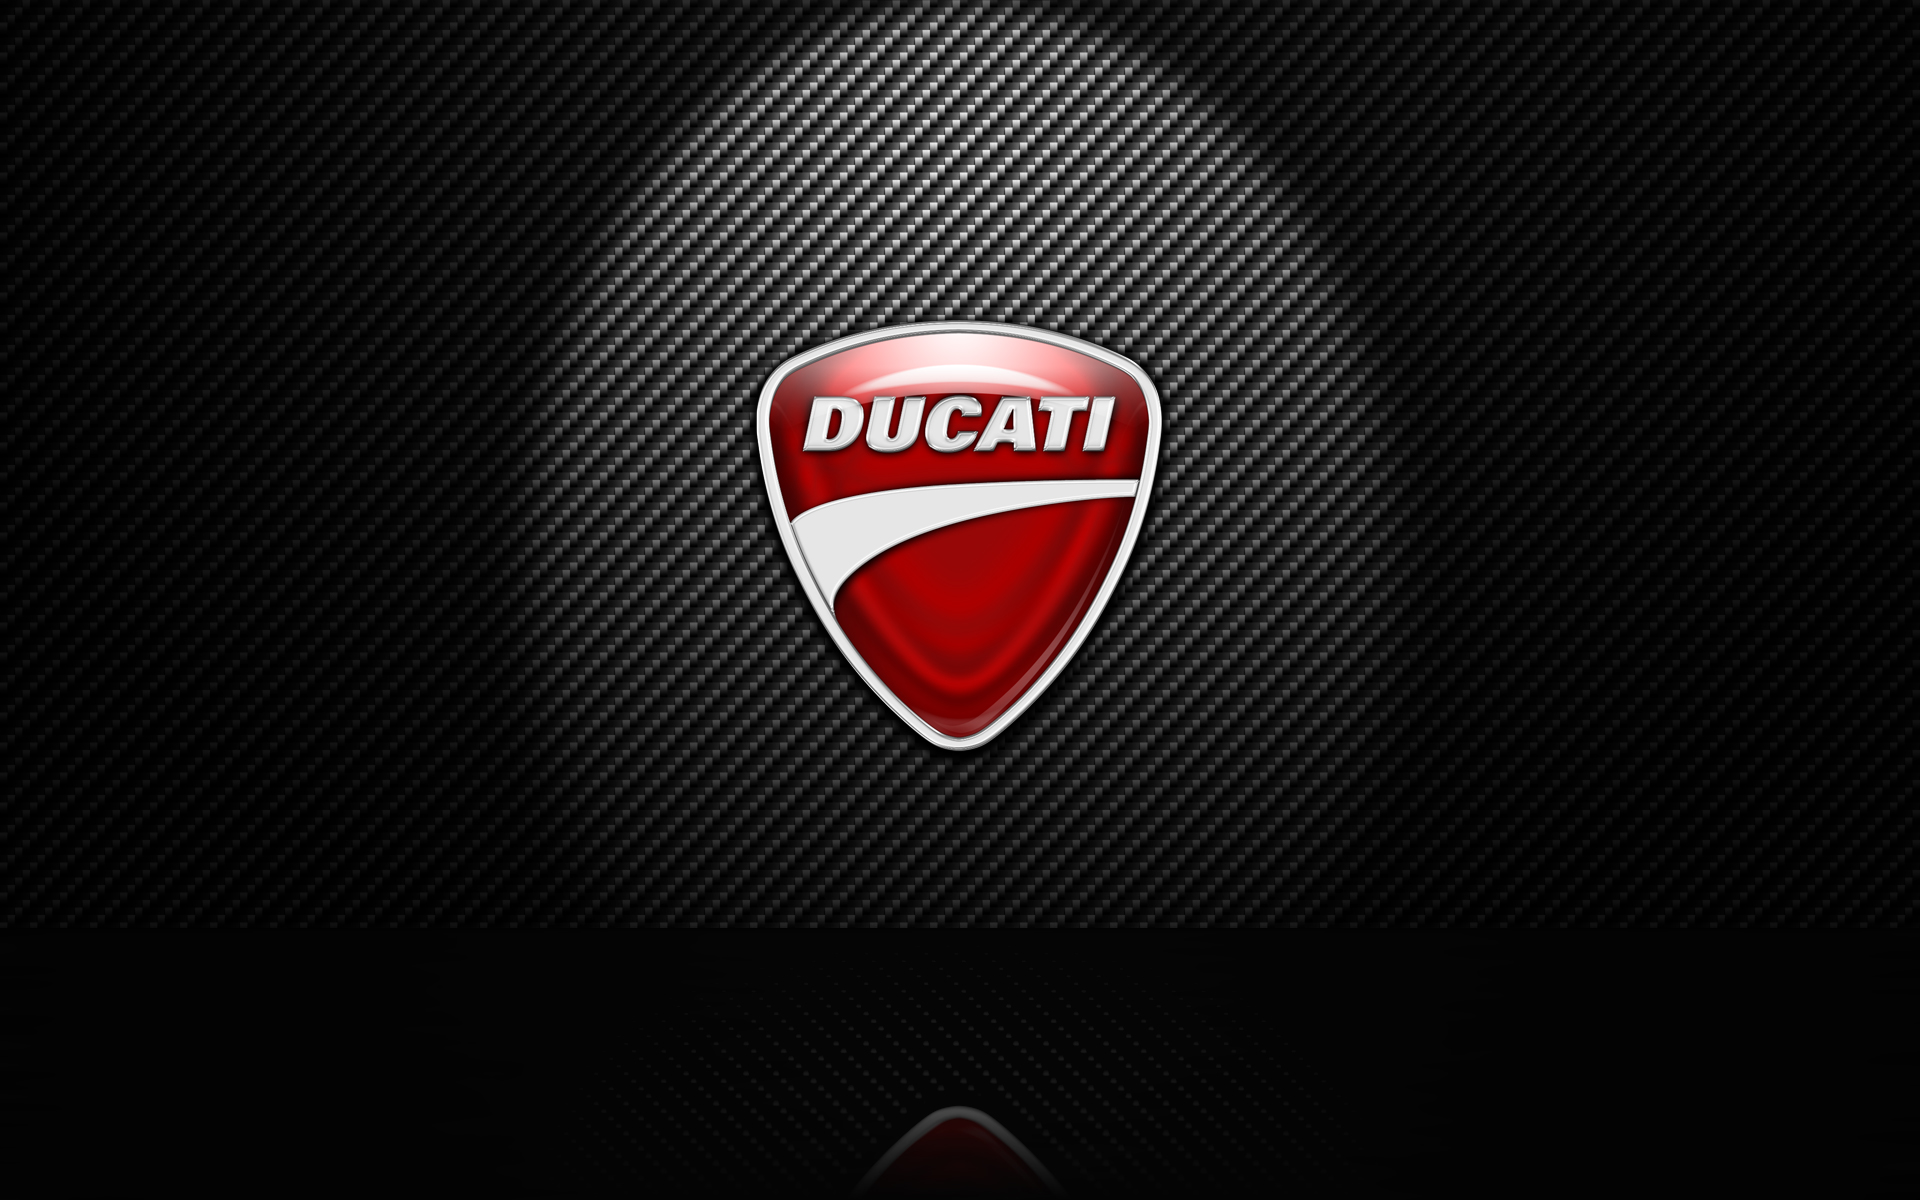 Ducati logo wallpapers HD